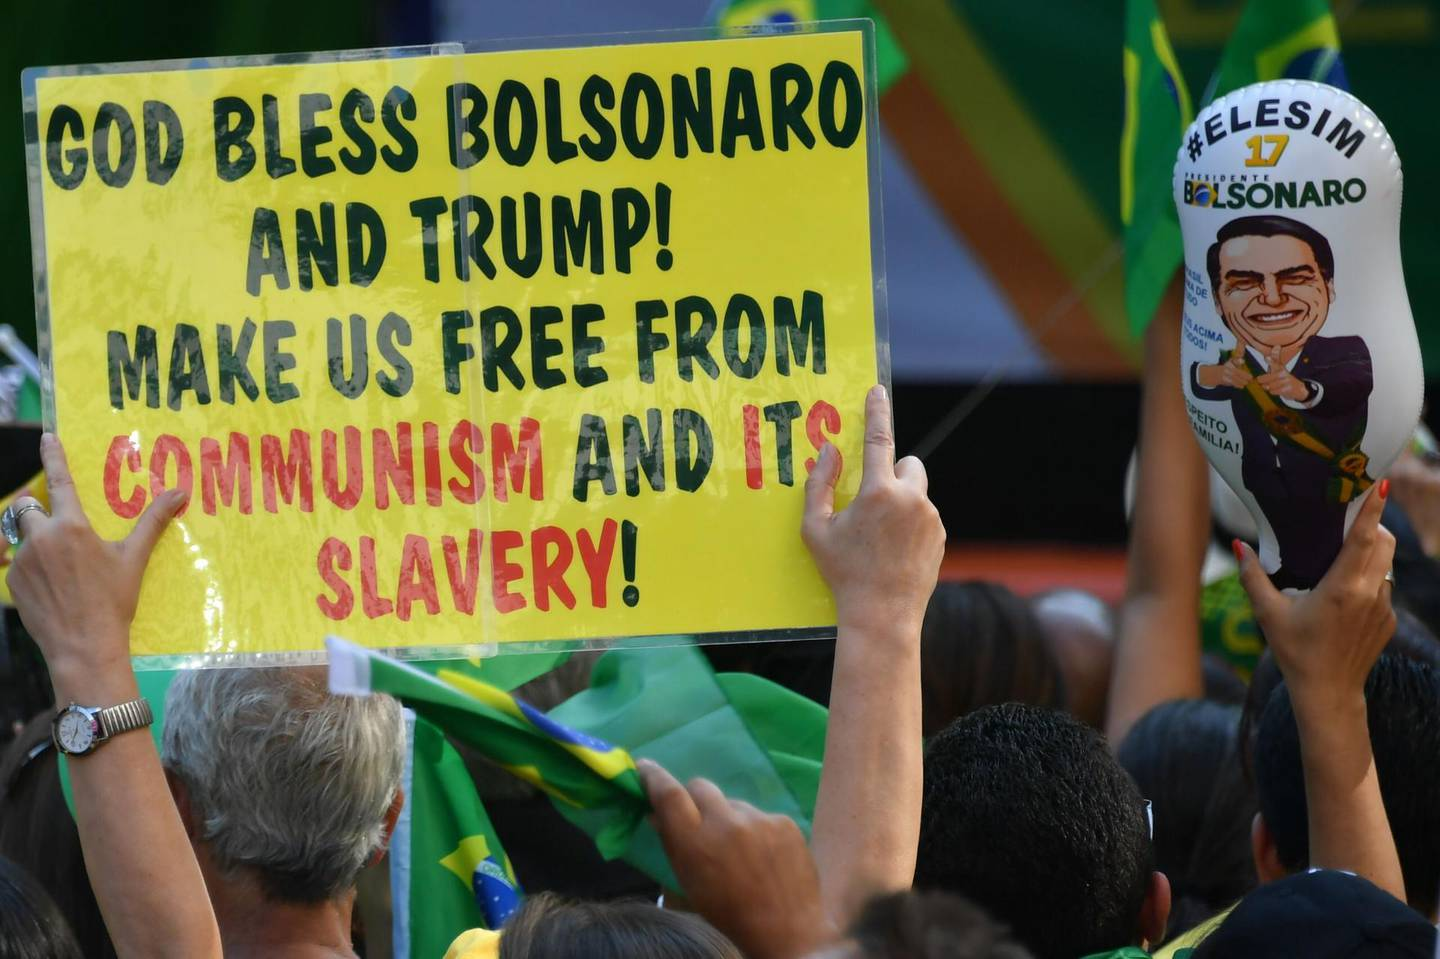 Supporters of Brazilian right-wing presidential candidate Jair Bolsonaro take part in a rally along Paulista Avenue in Sao Paulo Brazil on October 21 2018. Barring any last-minute upset, Brazil appears poised to elect Jair Bolsonaro, a populist far-right veteran politician, as its next president in a week's time. / AFP / NELSON ALMEIDA